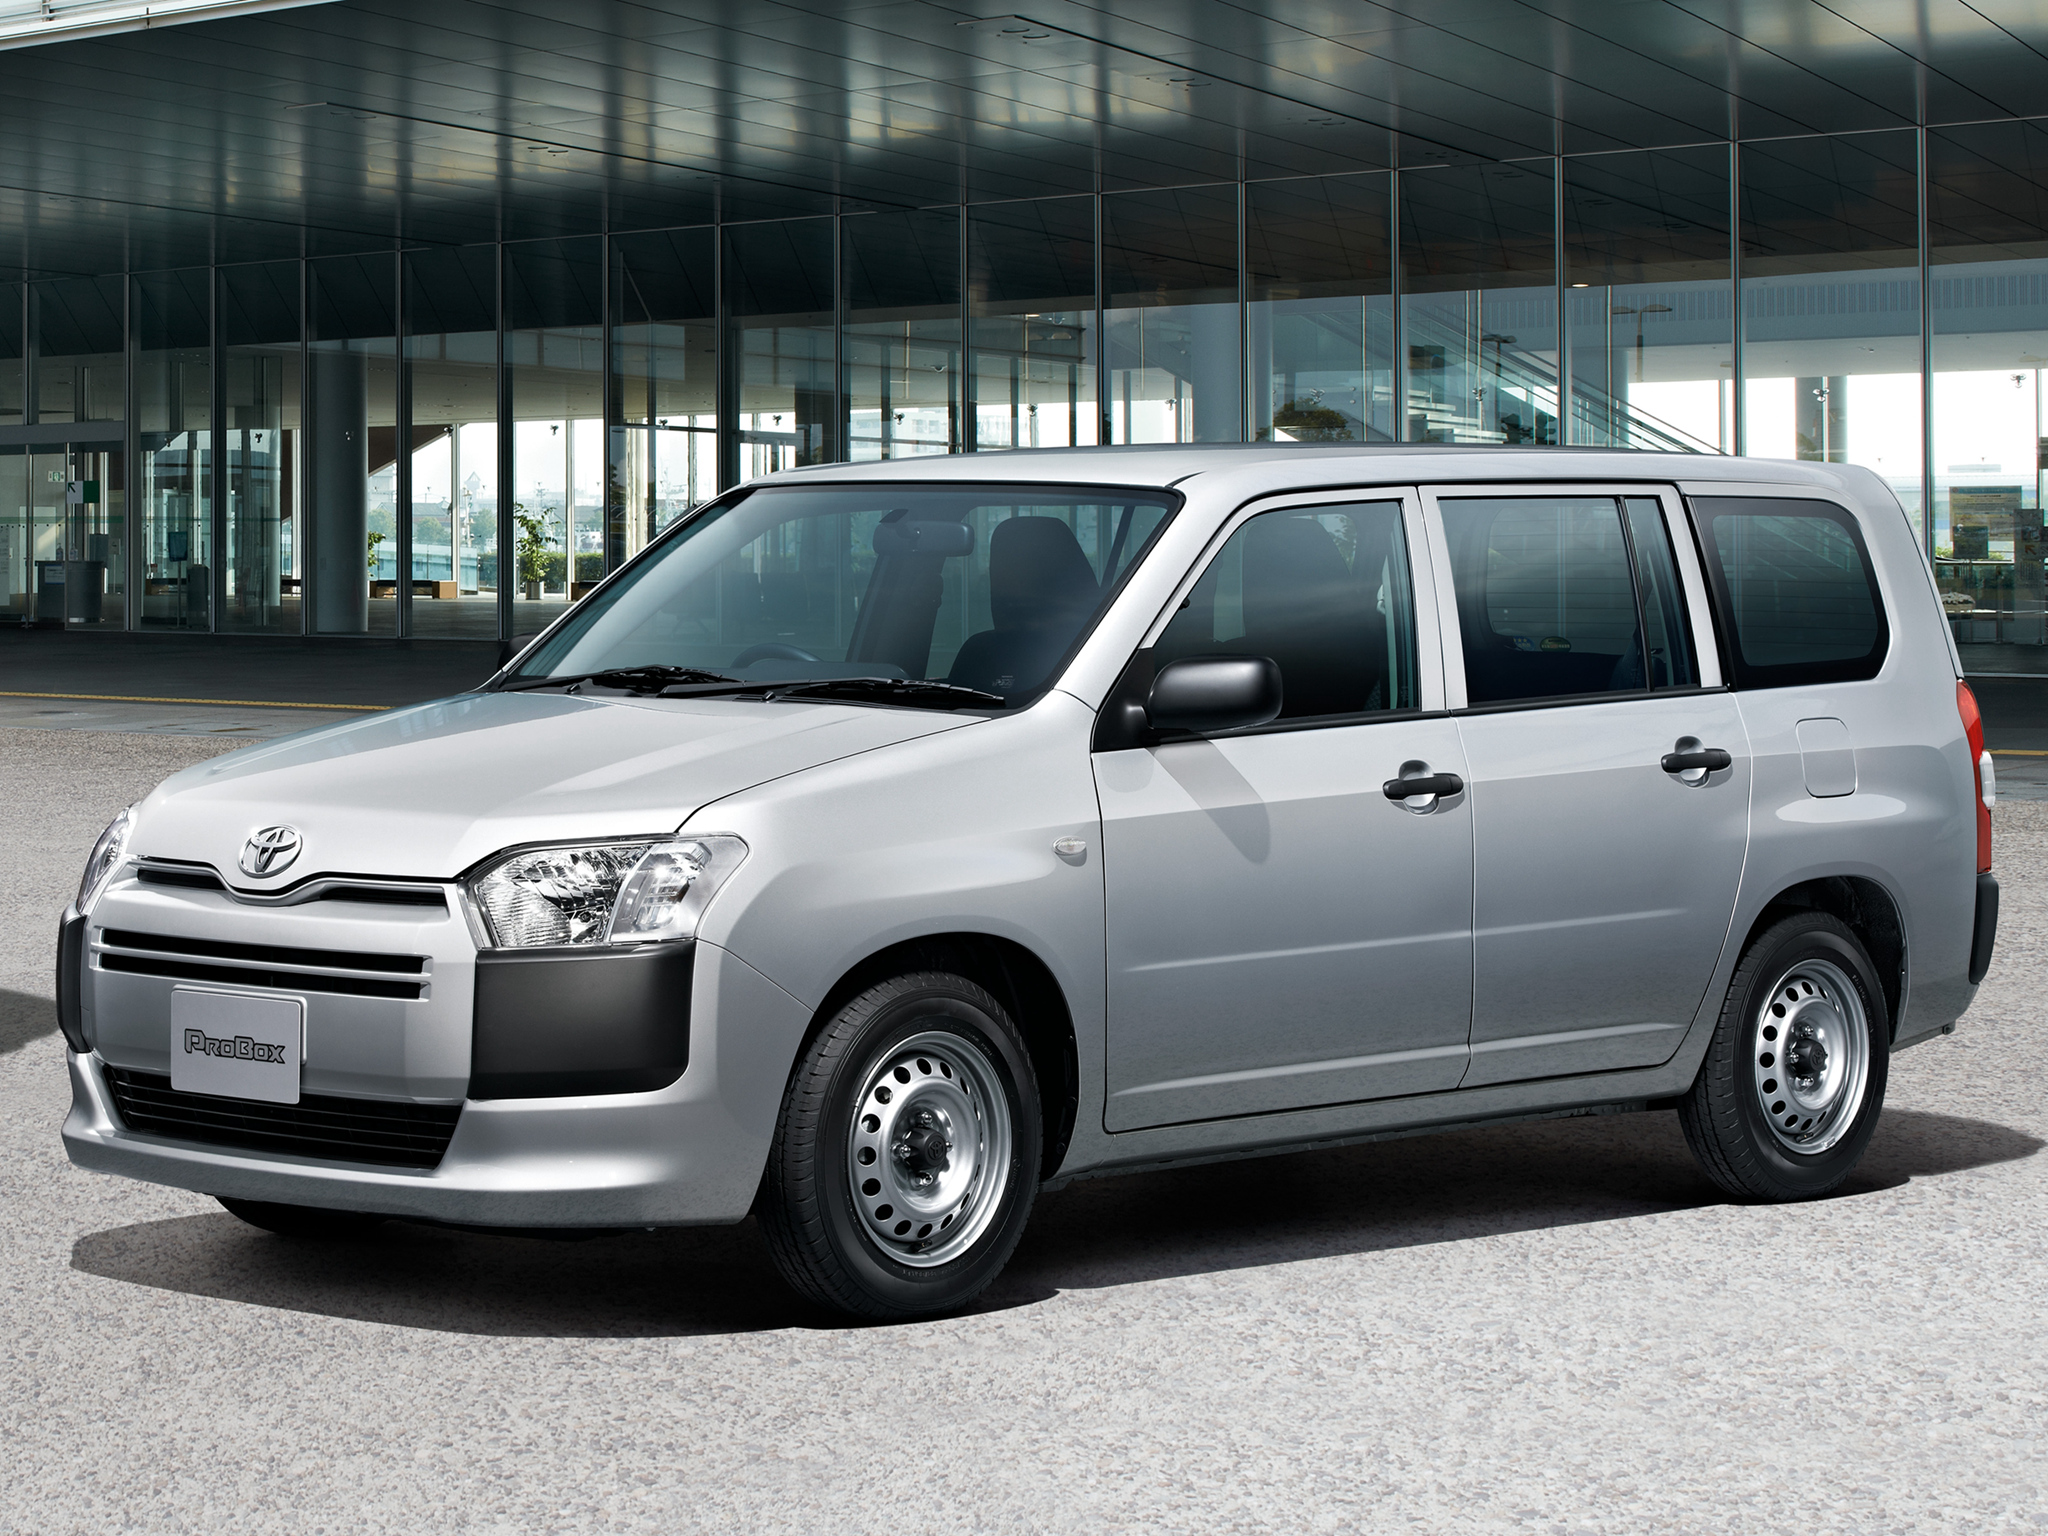 is the new camry all wheel drive grand avanza veloz 1.5 a/t toyota launches 2014 probox and succeed in japan ...